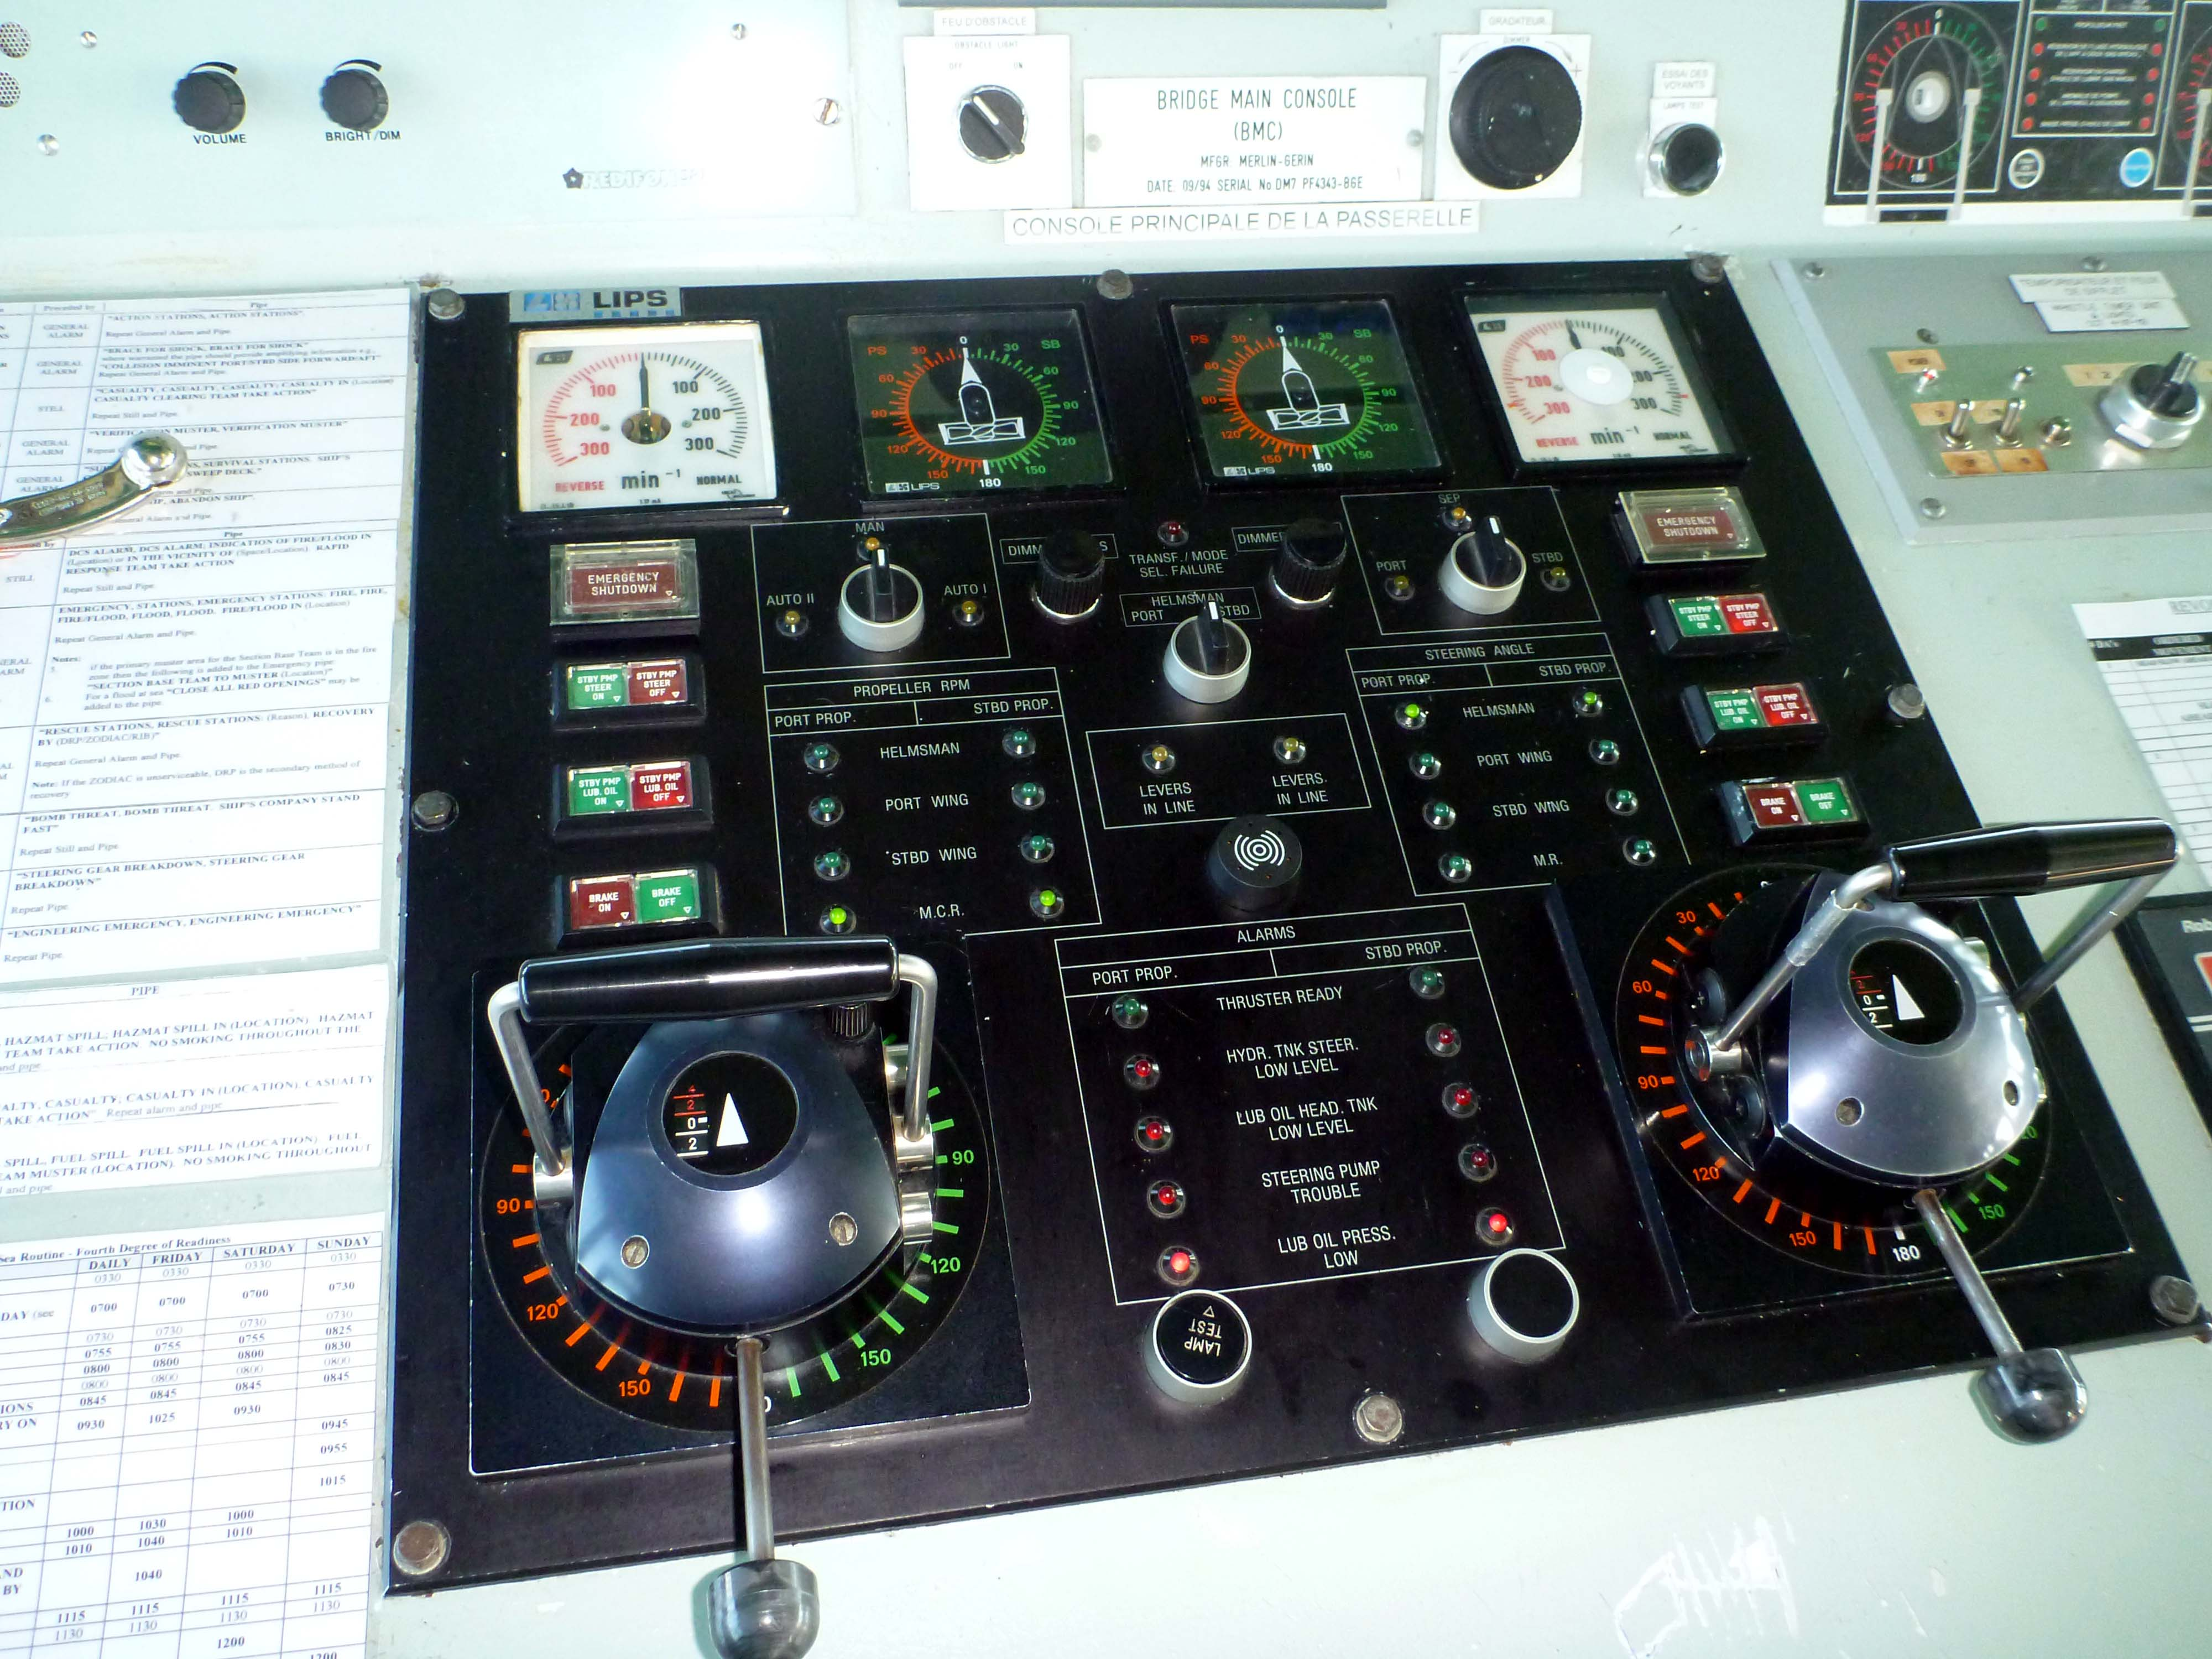 kingston_bridge_steering_console2.jpg